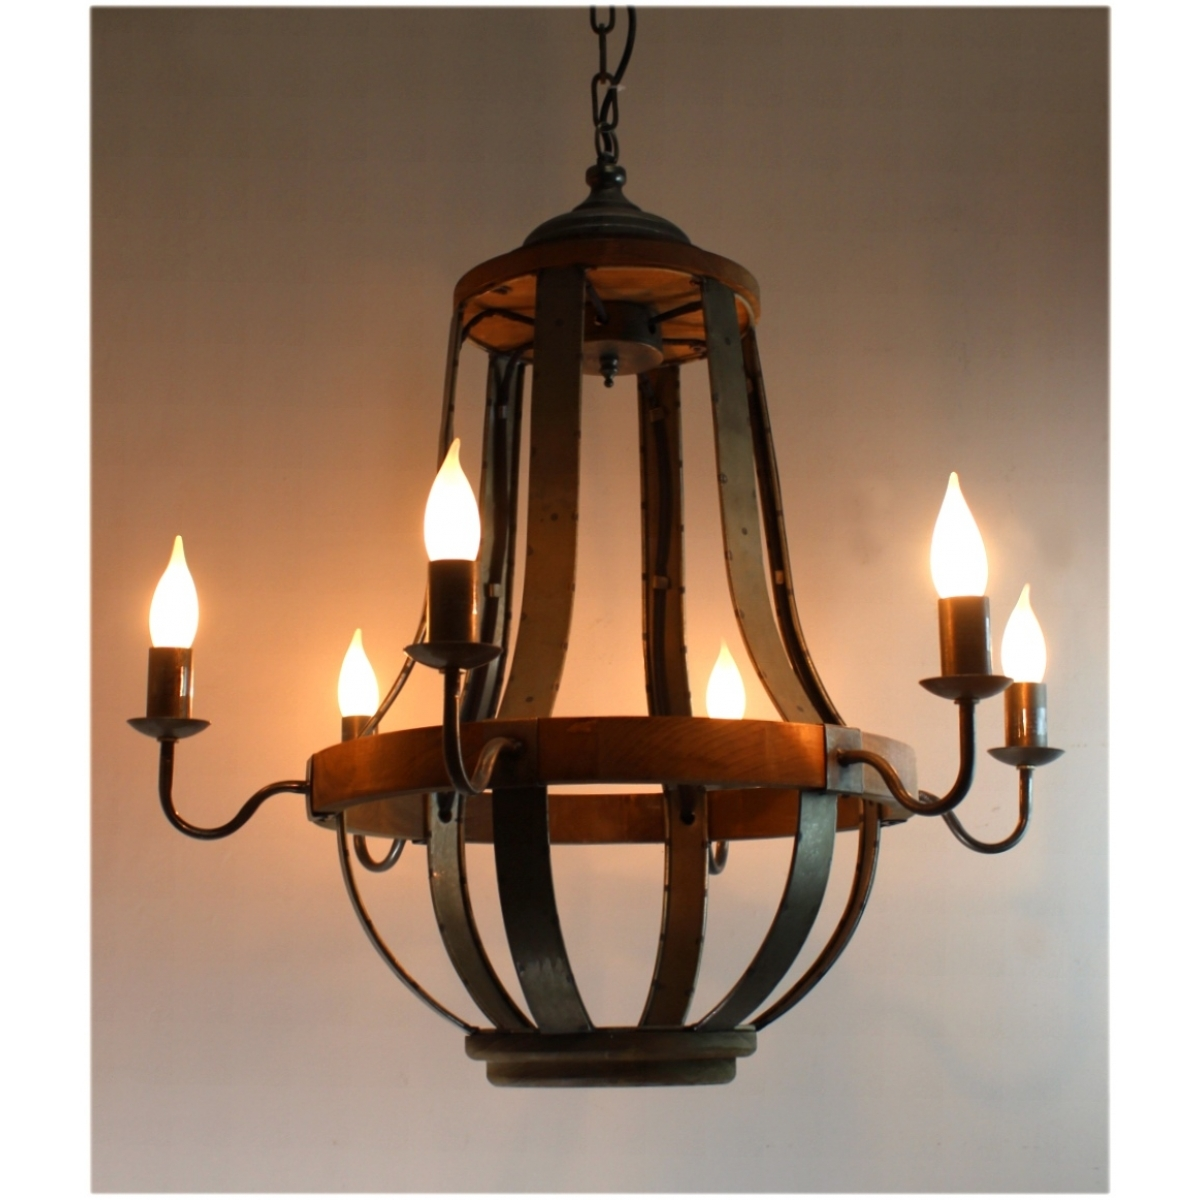 579 Iron Strap And Aged Wood Chandelier French Country Vintage Throughout Vintage Style Chandeliers (#1 of 12)